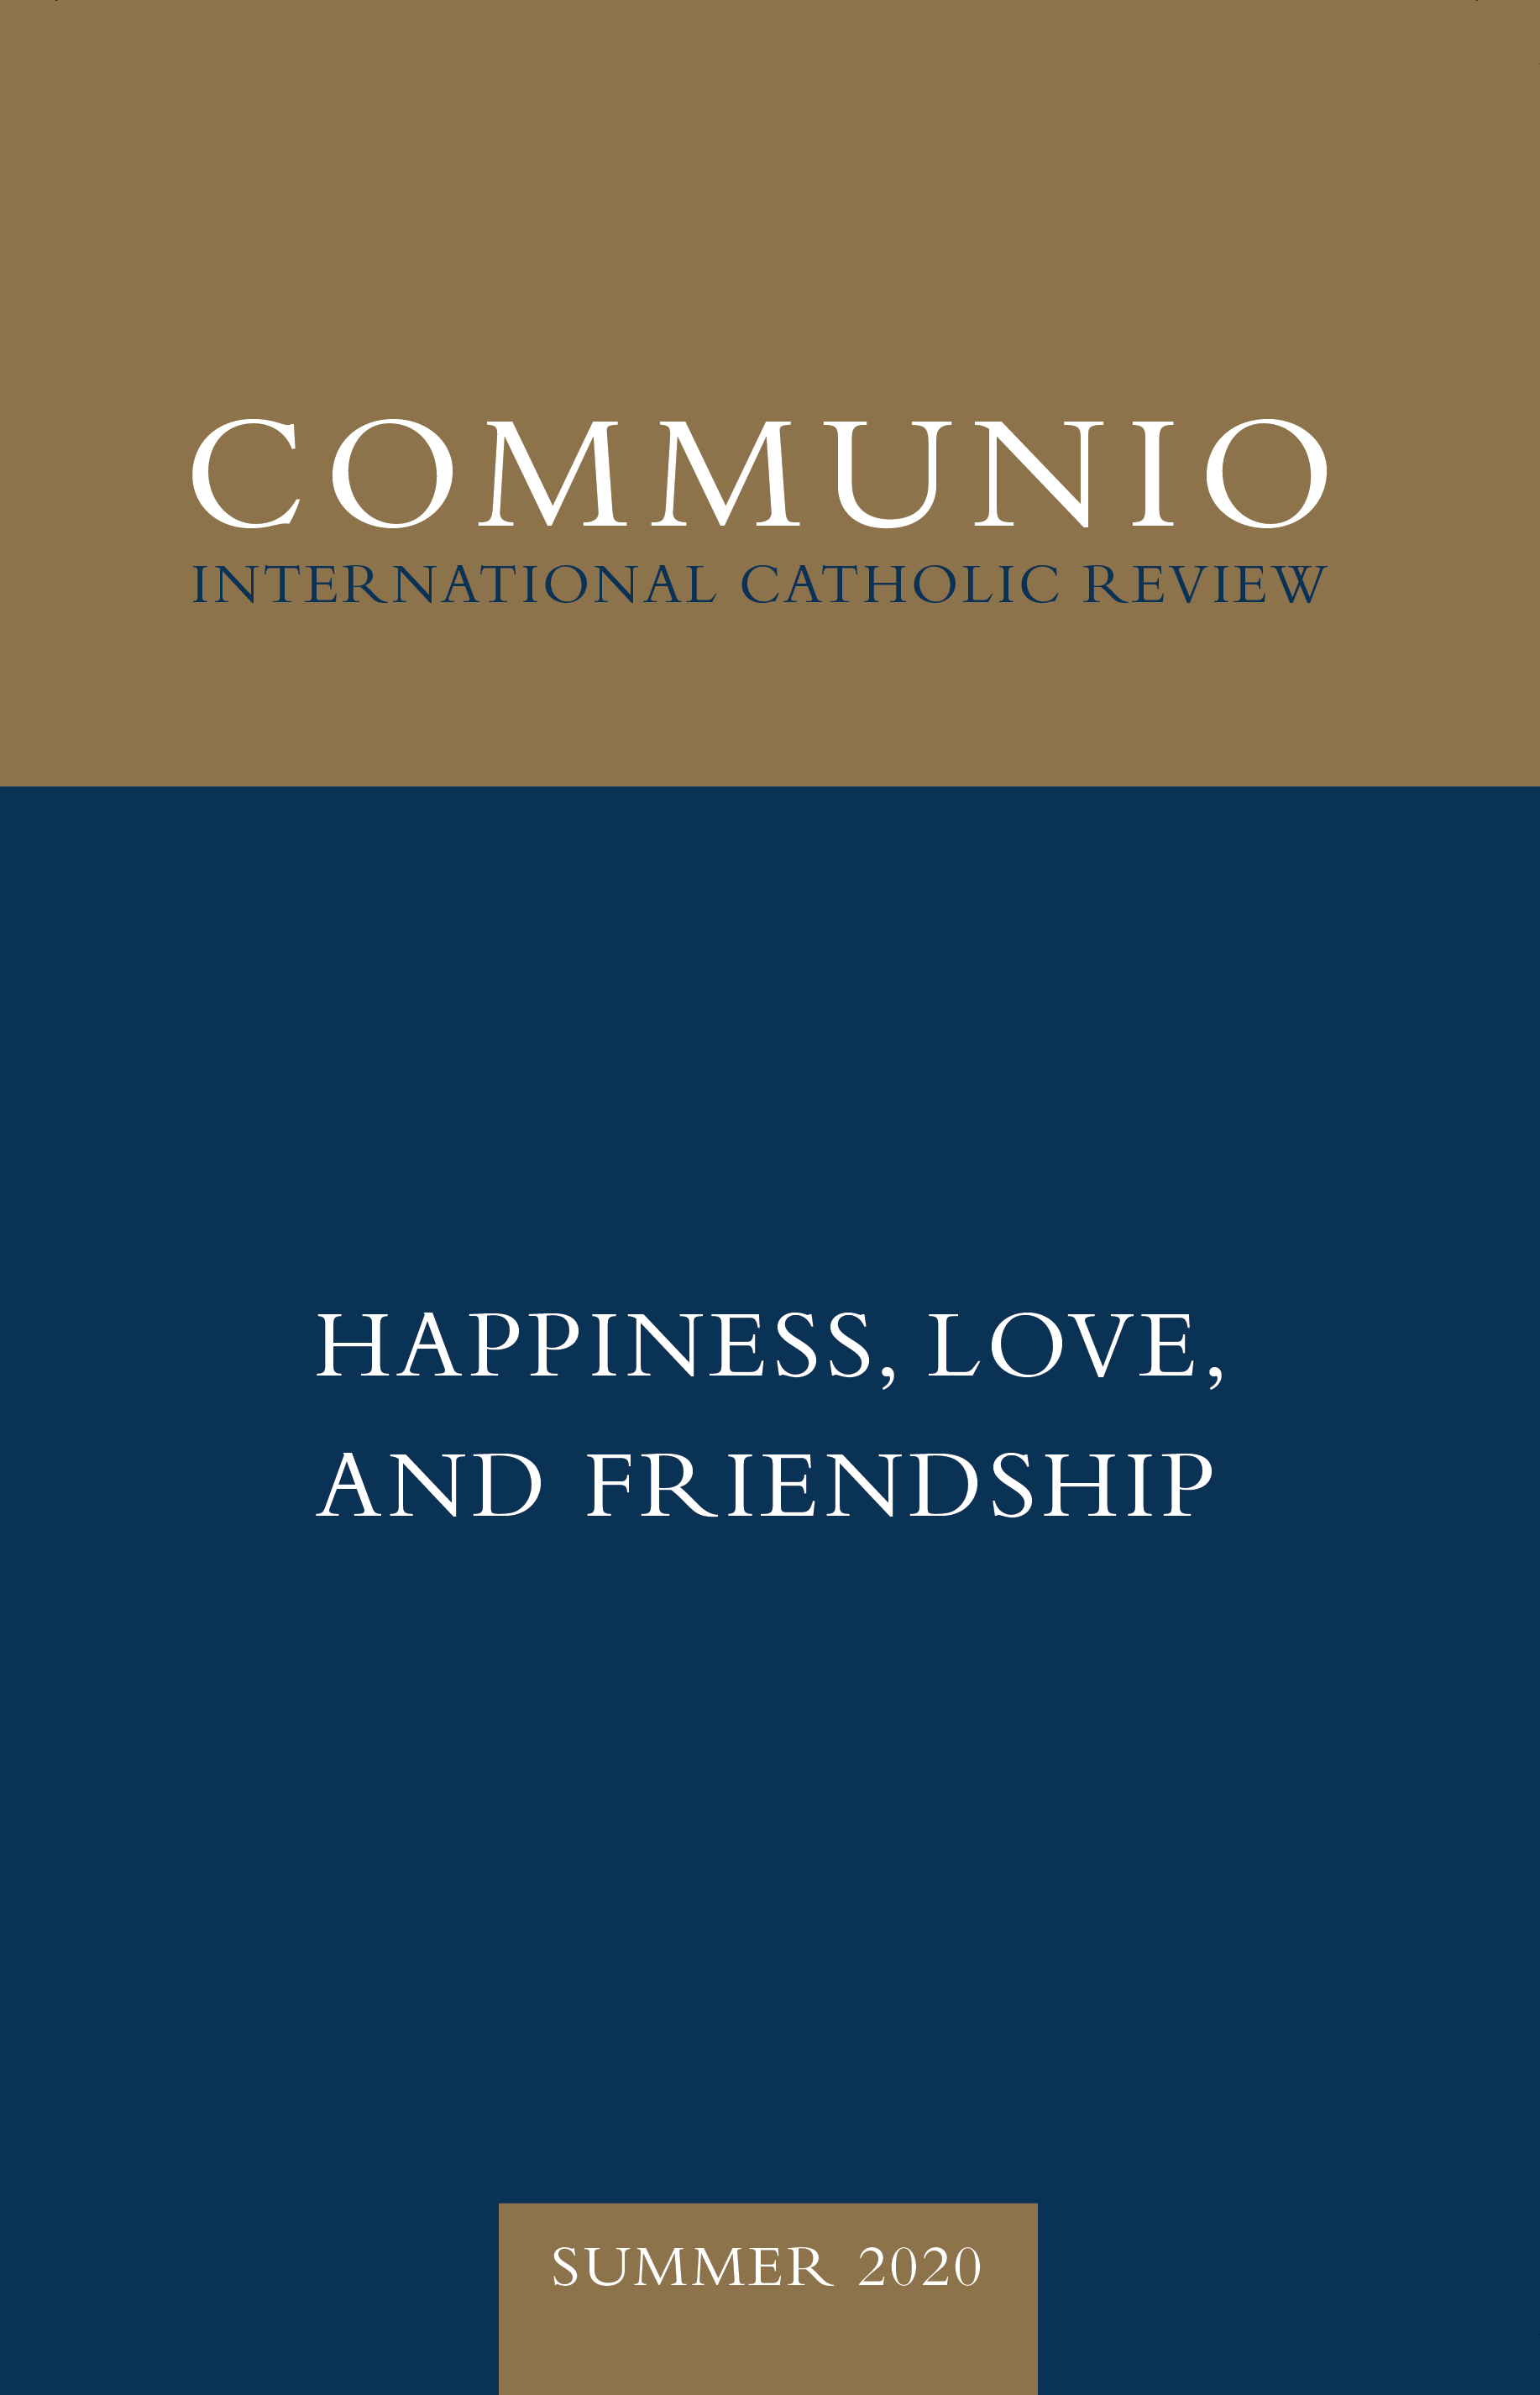 Communio - Summer 2020 - Happiness, Love, and Friendship